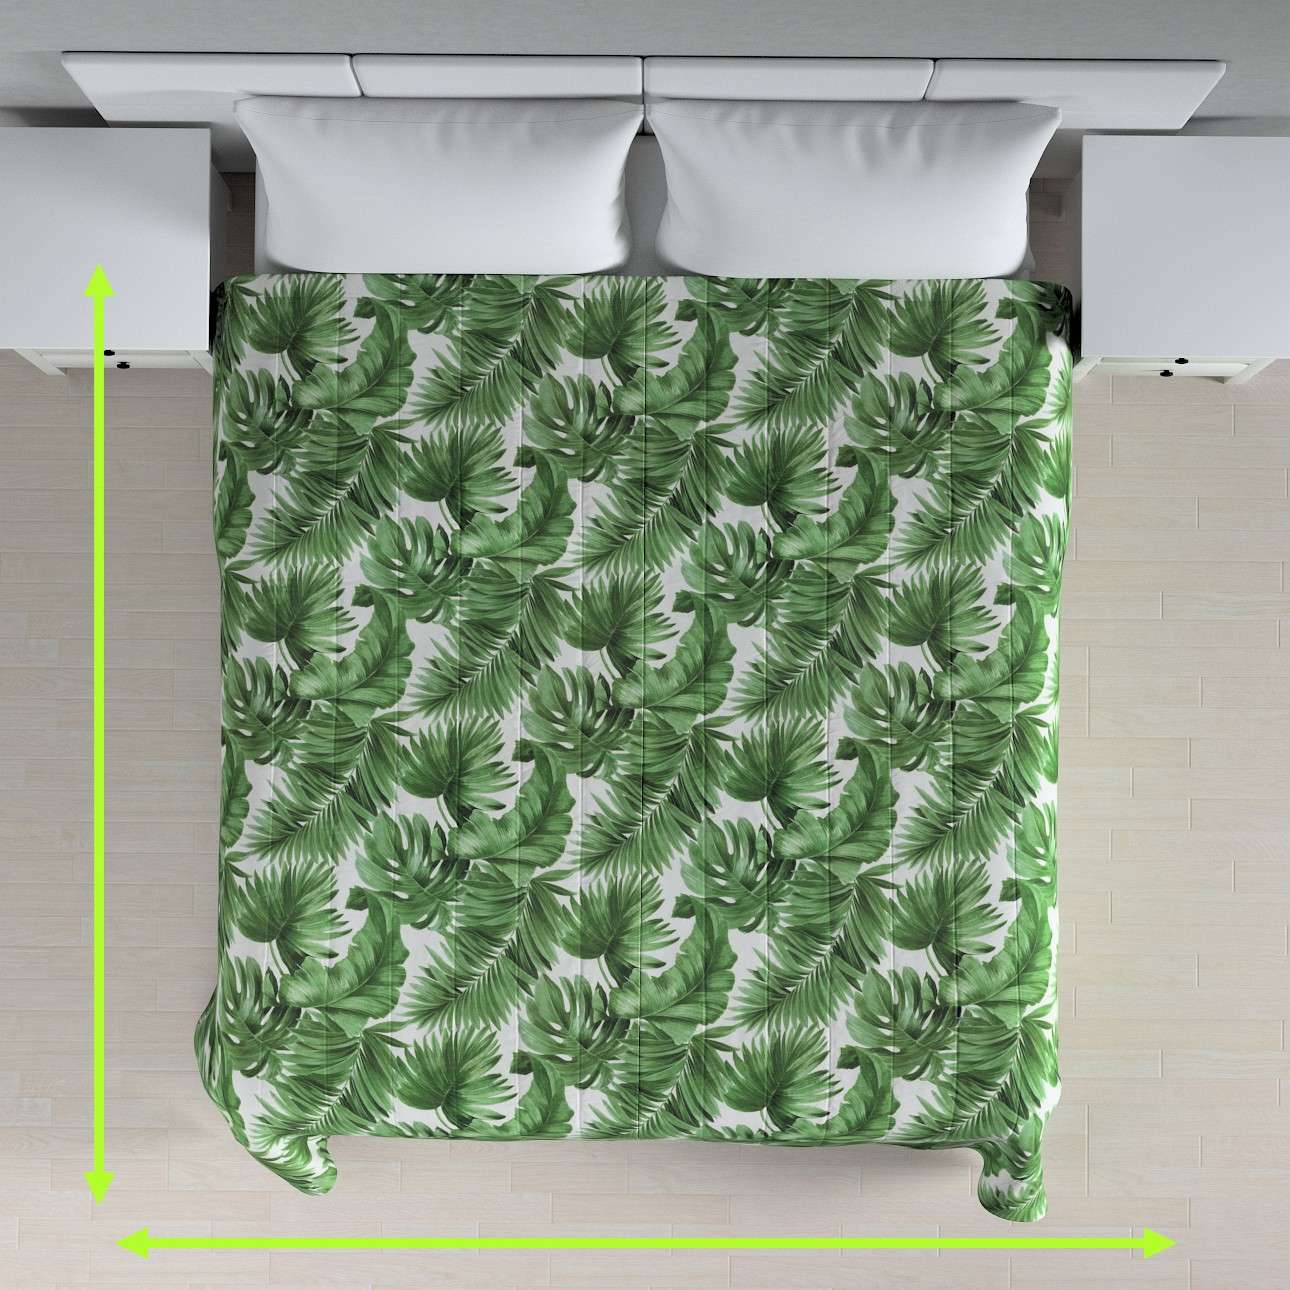 Quilted throw (vertical quilt pattern) in collection Urban Jungle, fabric: 141-71